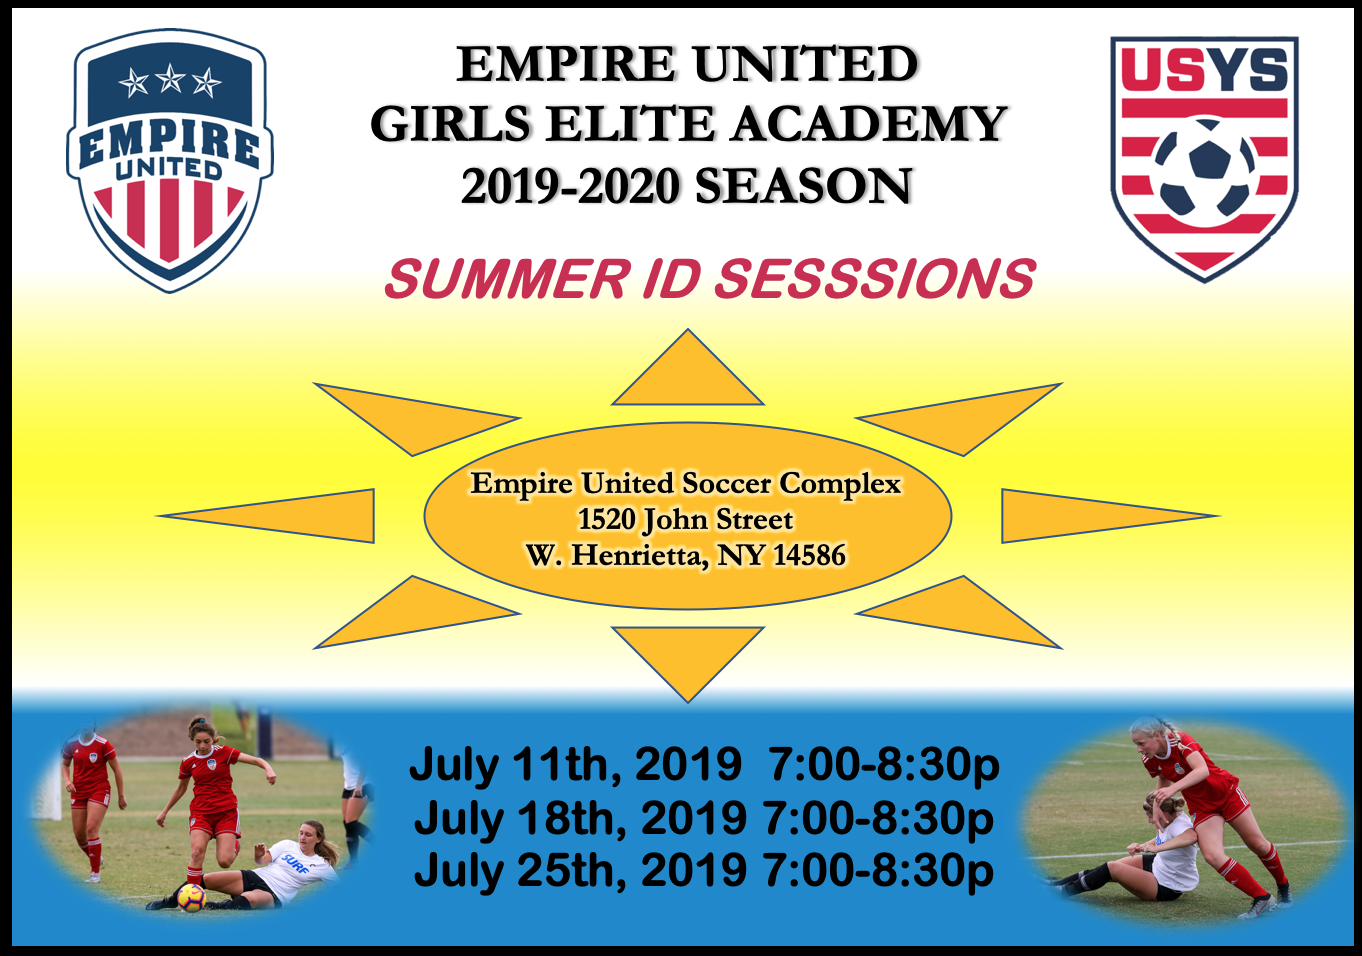 Summer ID Sessions